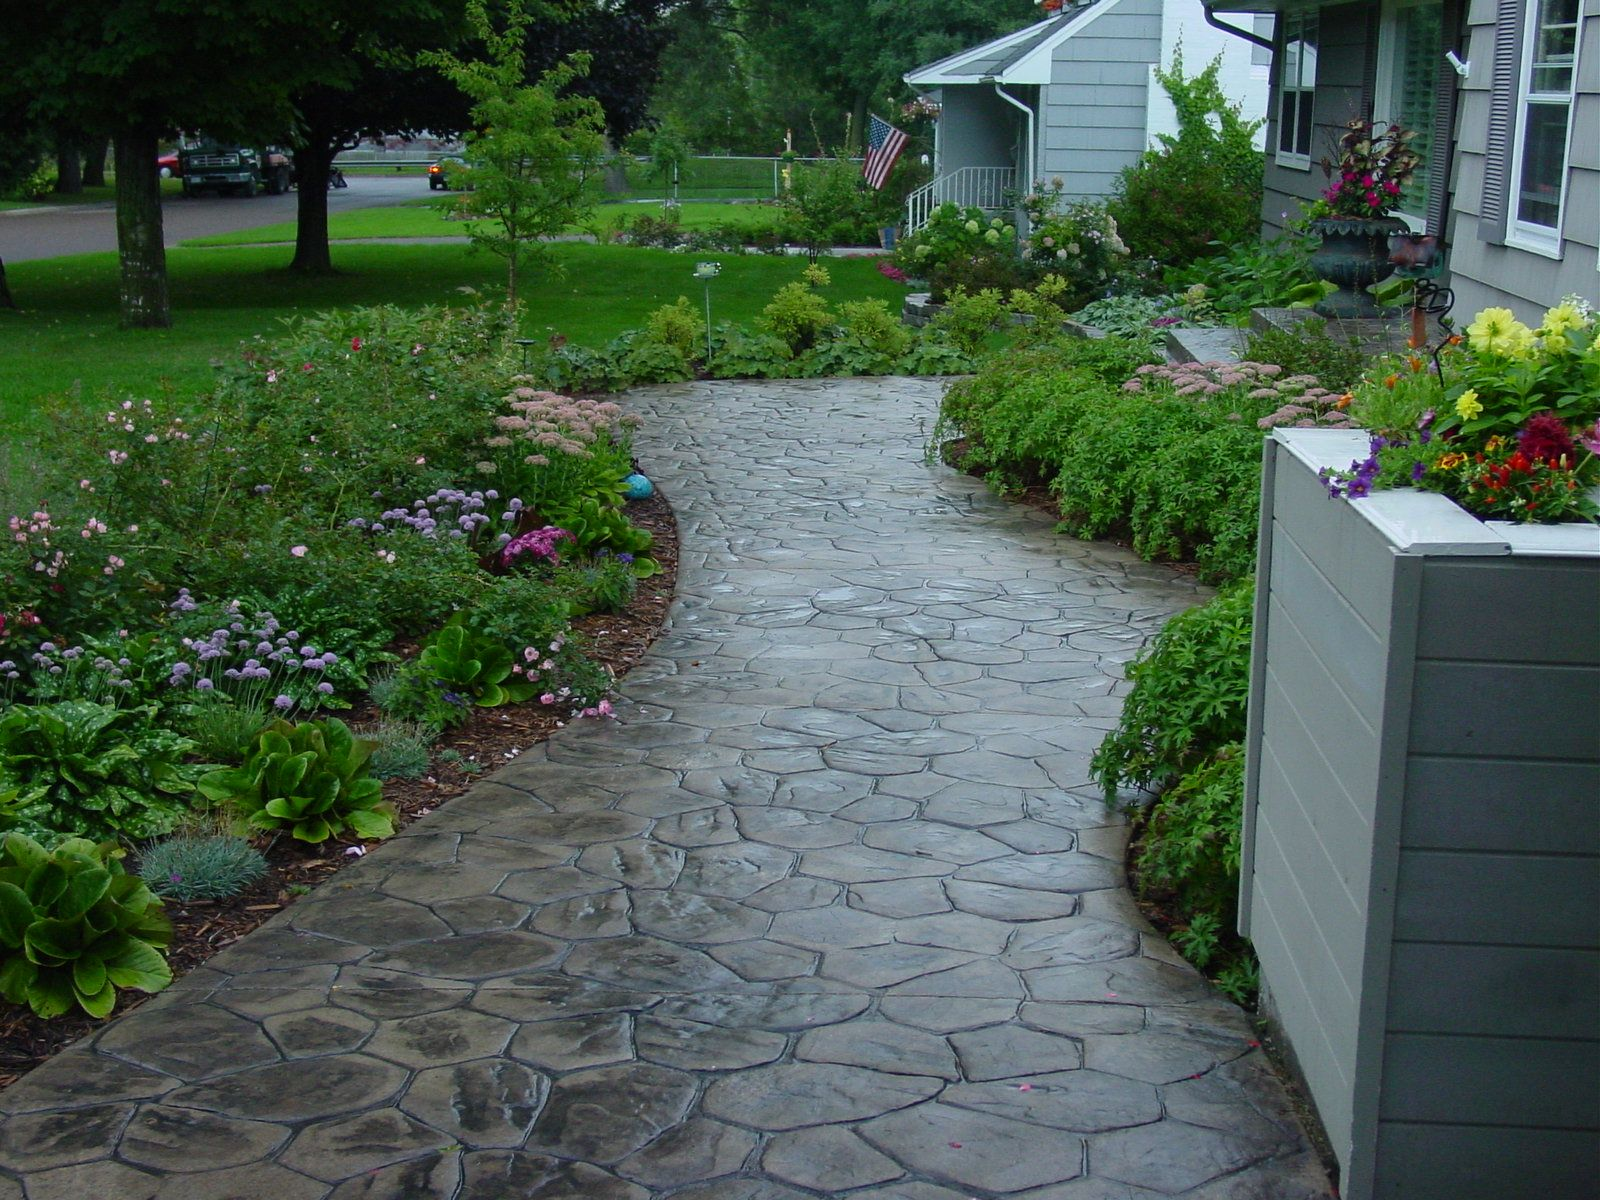 Landscape Edina Mn And Landscaping Contractor Edina Mn Garden Landscape Design Garden Help Backyard Diy Projects